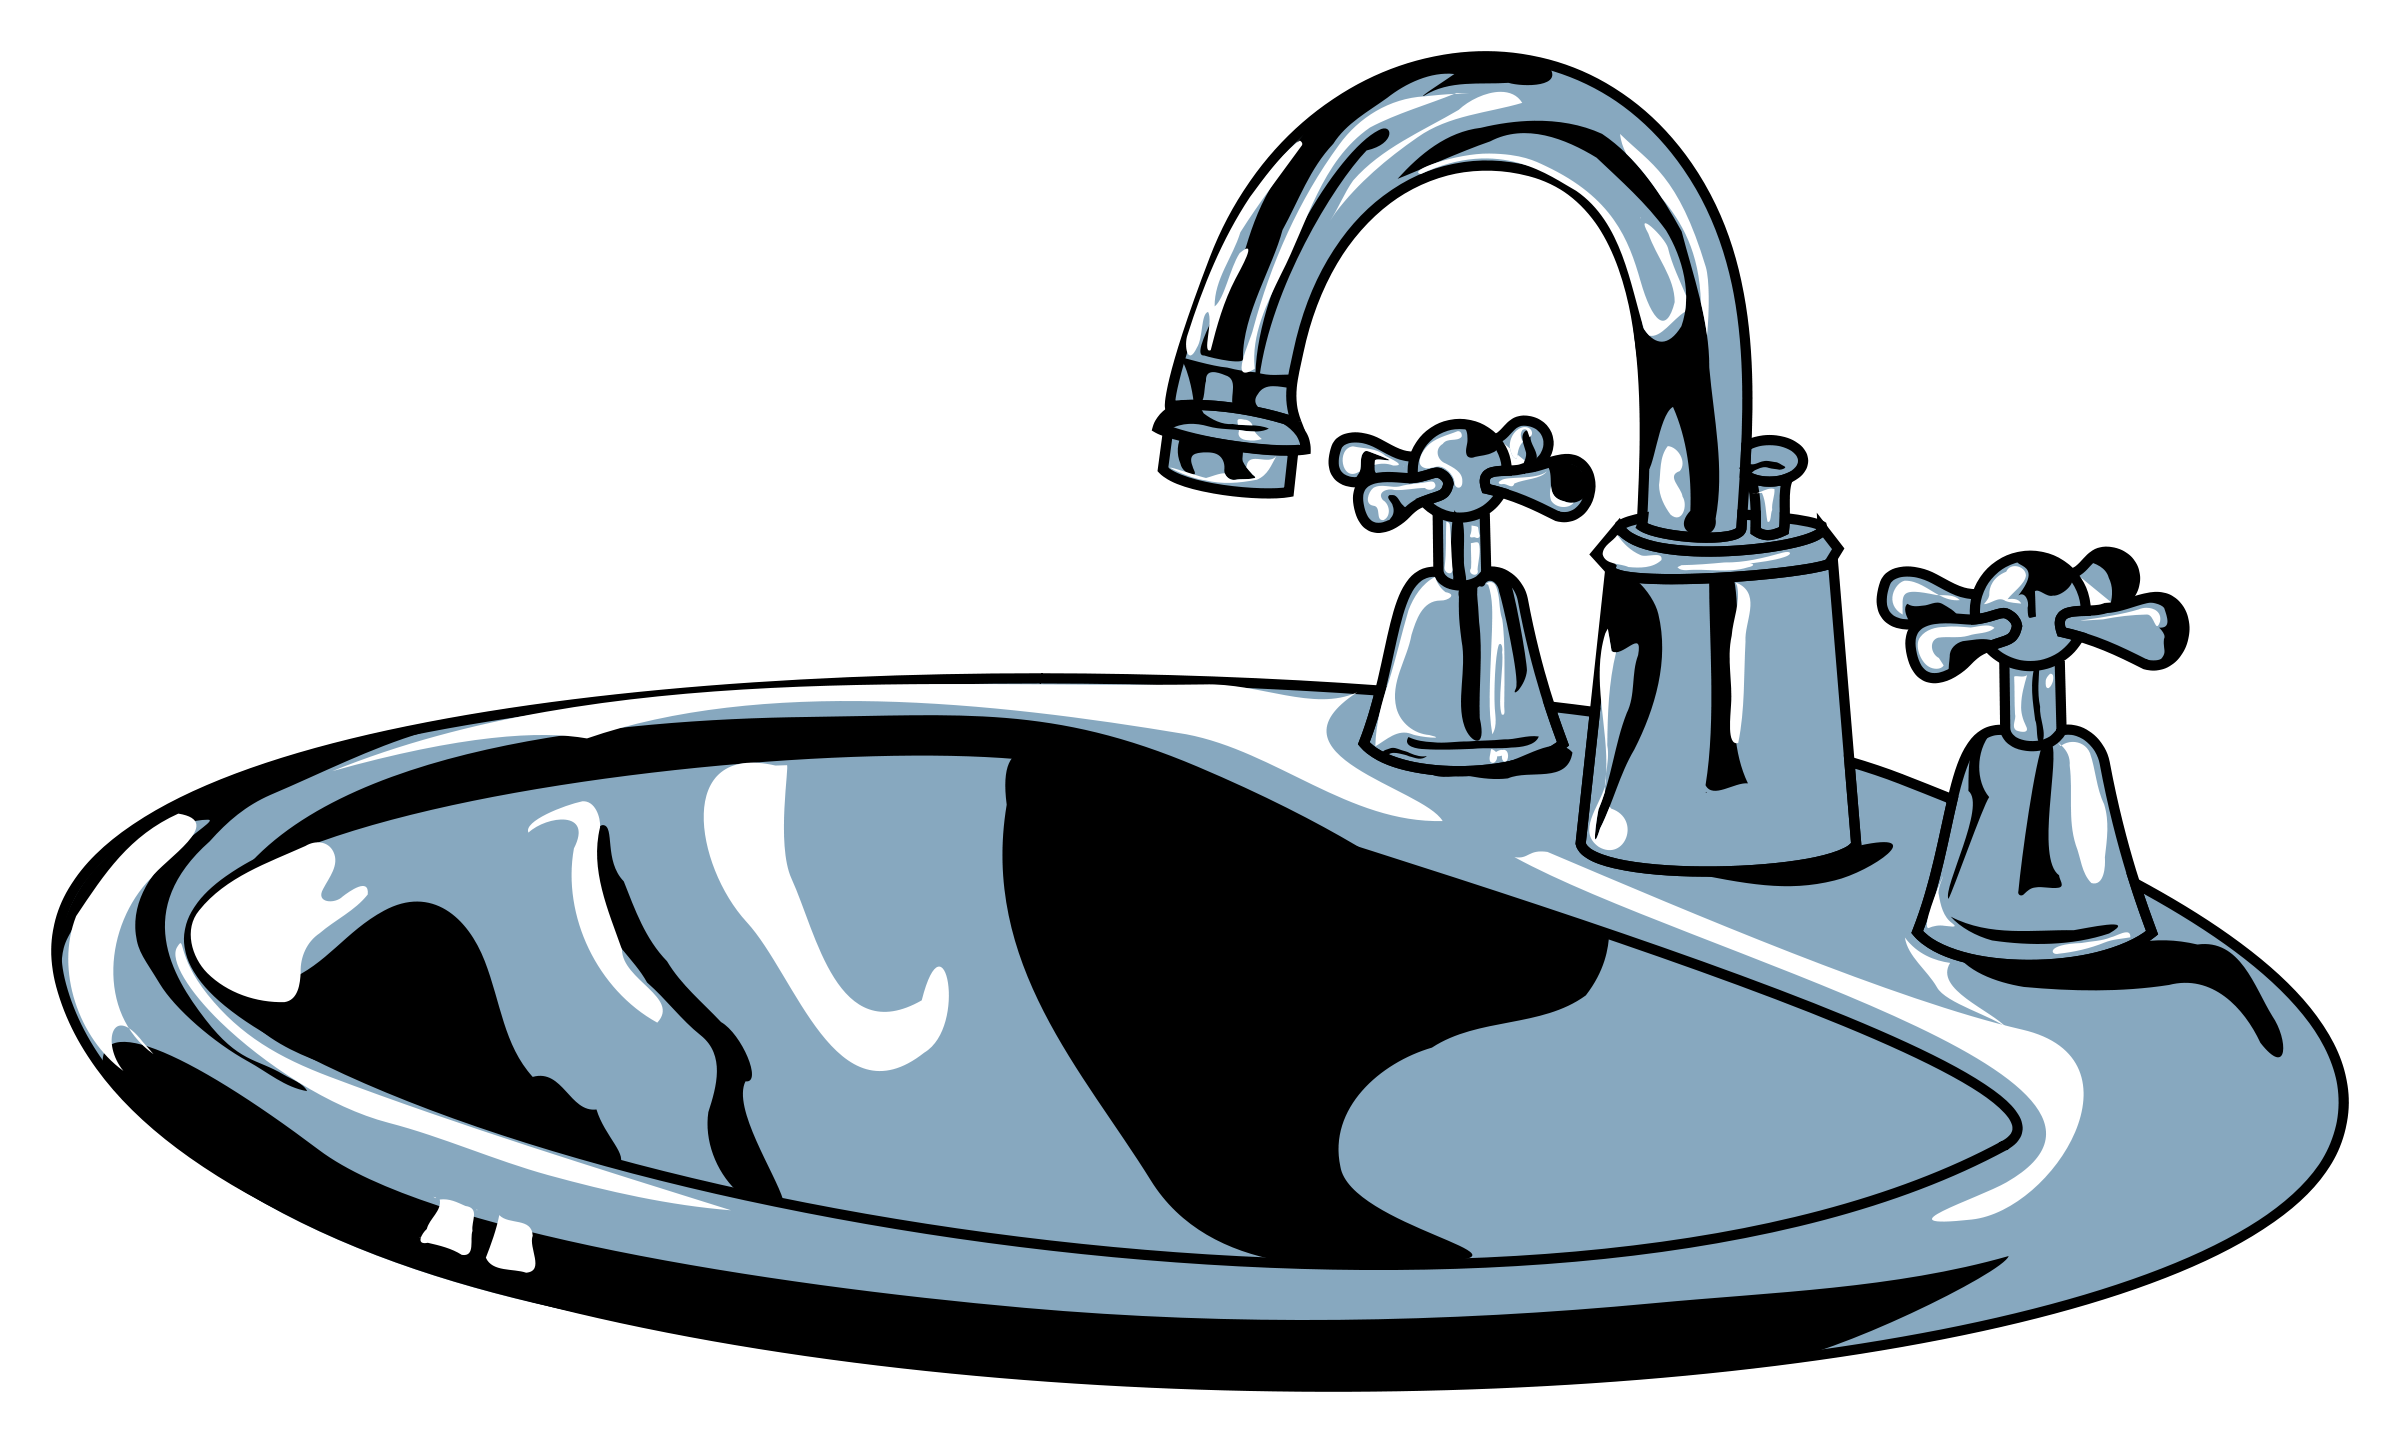 Sink clipart boy. Potty free download on